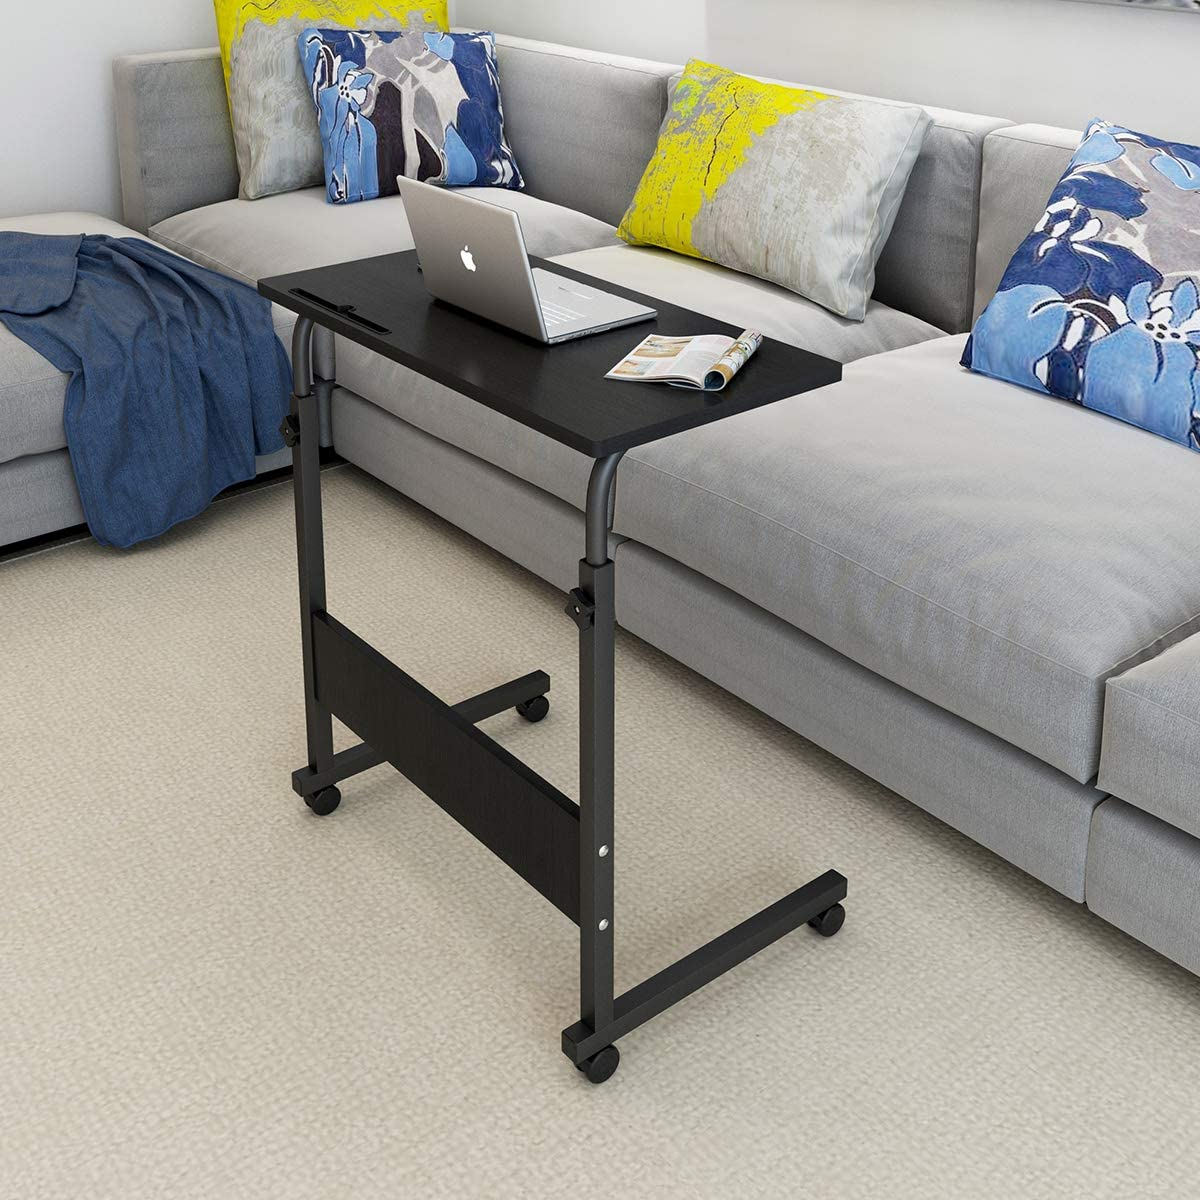 Natwind 31.5 Inches Height Adjustable Mobile Side Table with Tablet Slot & Wheels Movable Portable Workstation Laptop Computer Stand for Bed Sofa Black-A